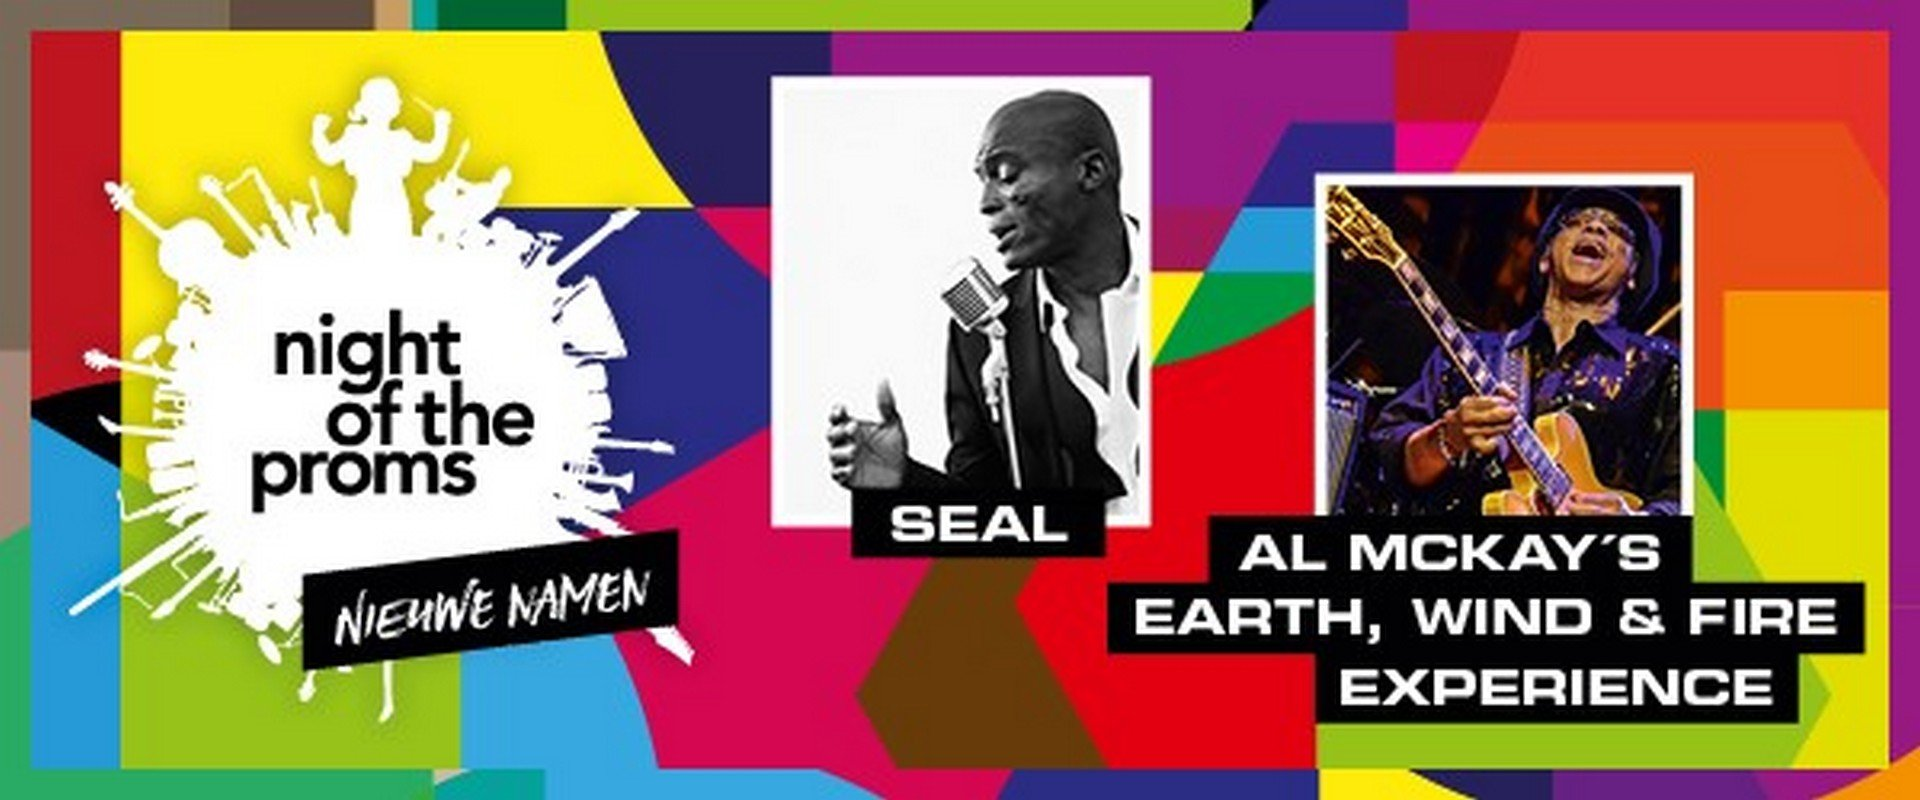 SEAL VERVOLLEDIGT PROGRAMMA NIGHT OF THE PROMS - Night Of The proms affiche